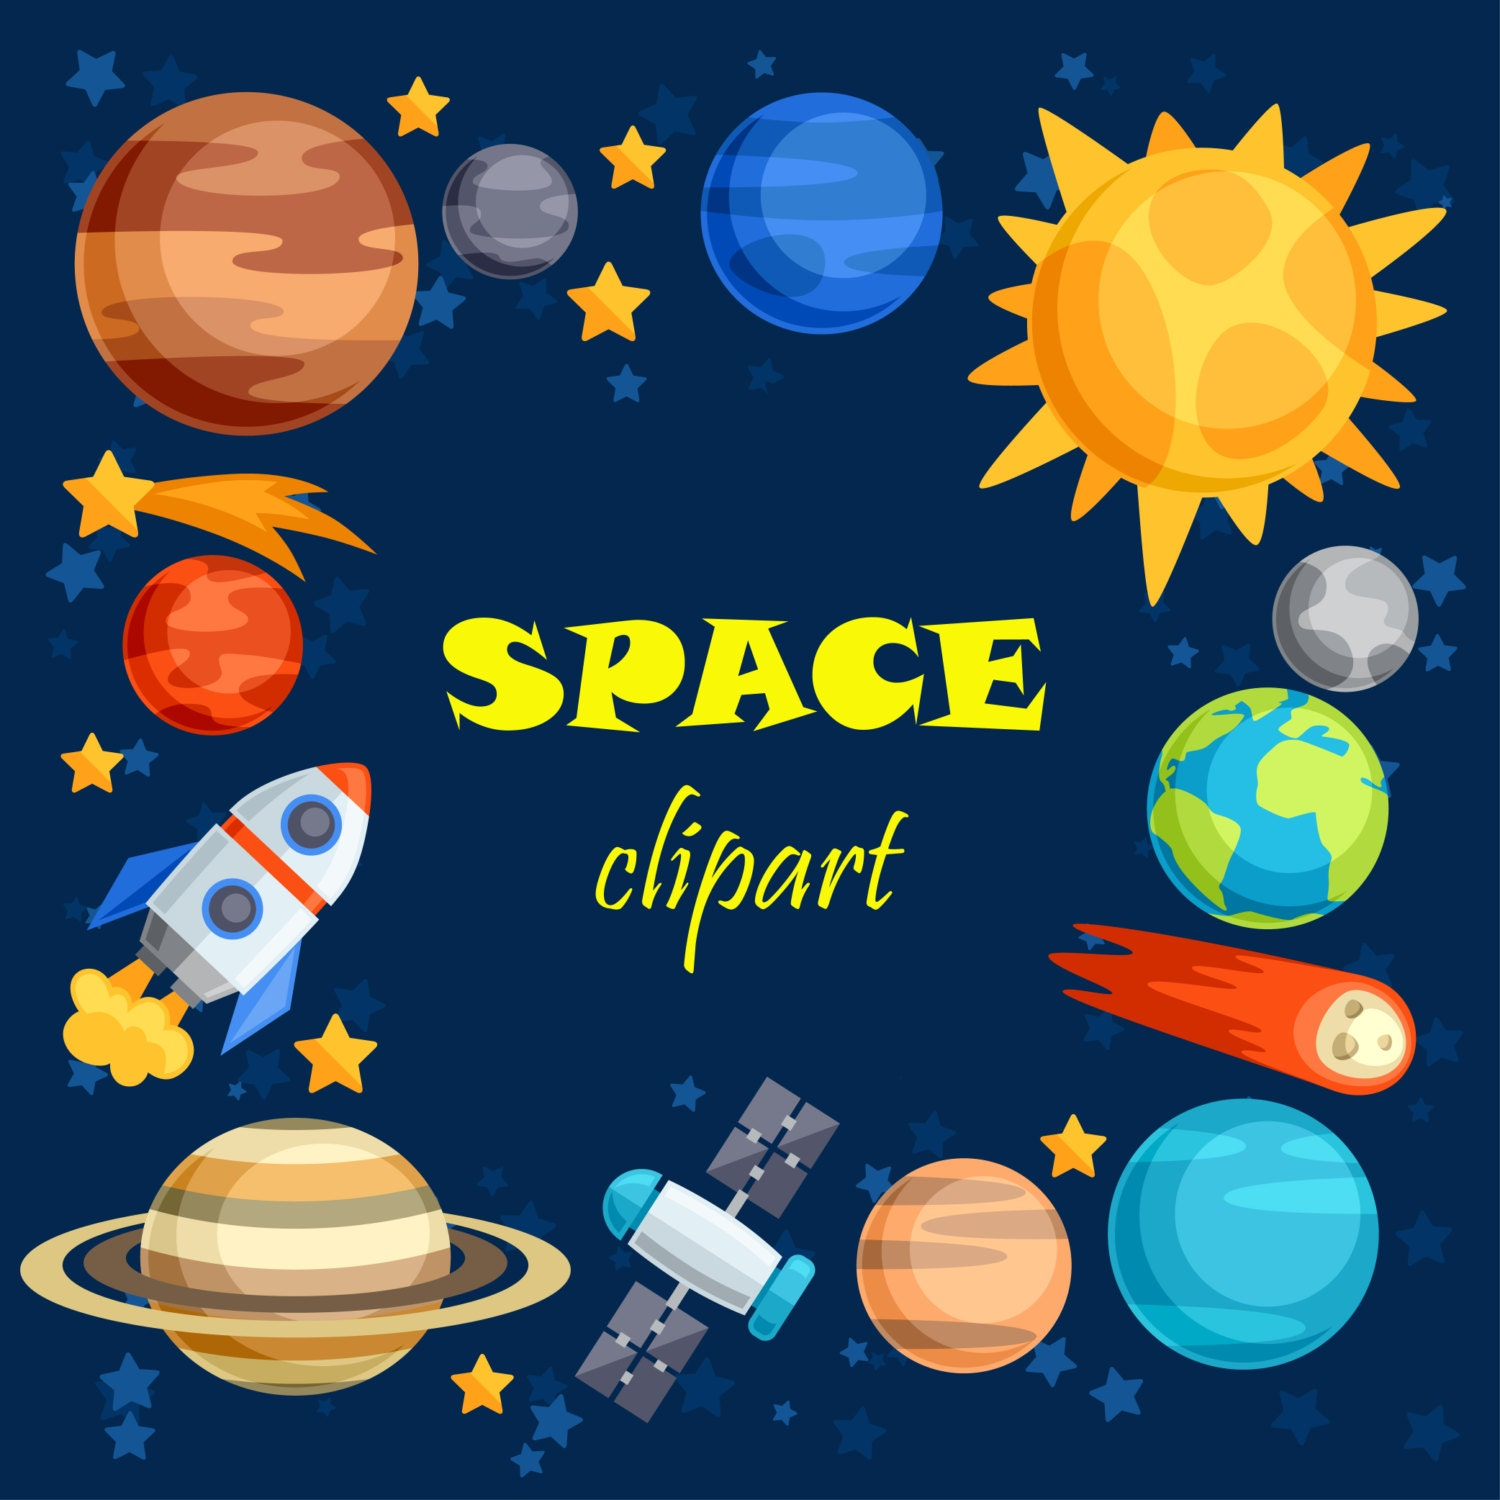 30% OFF AND MORE. Space clipart. Space clip art. Outer space.